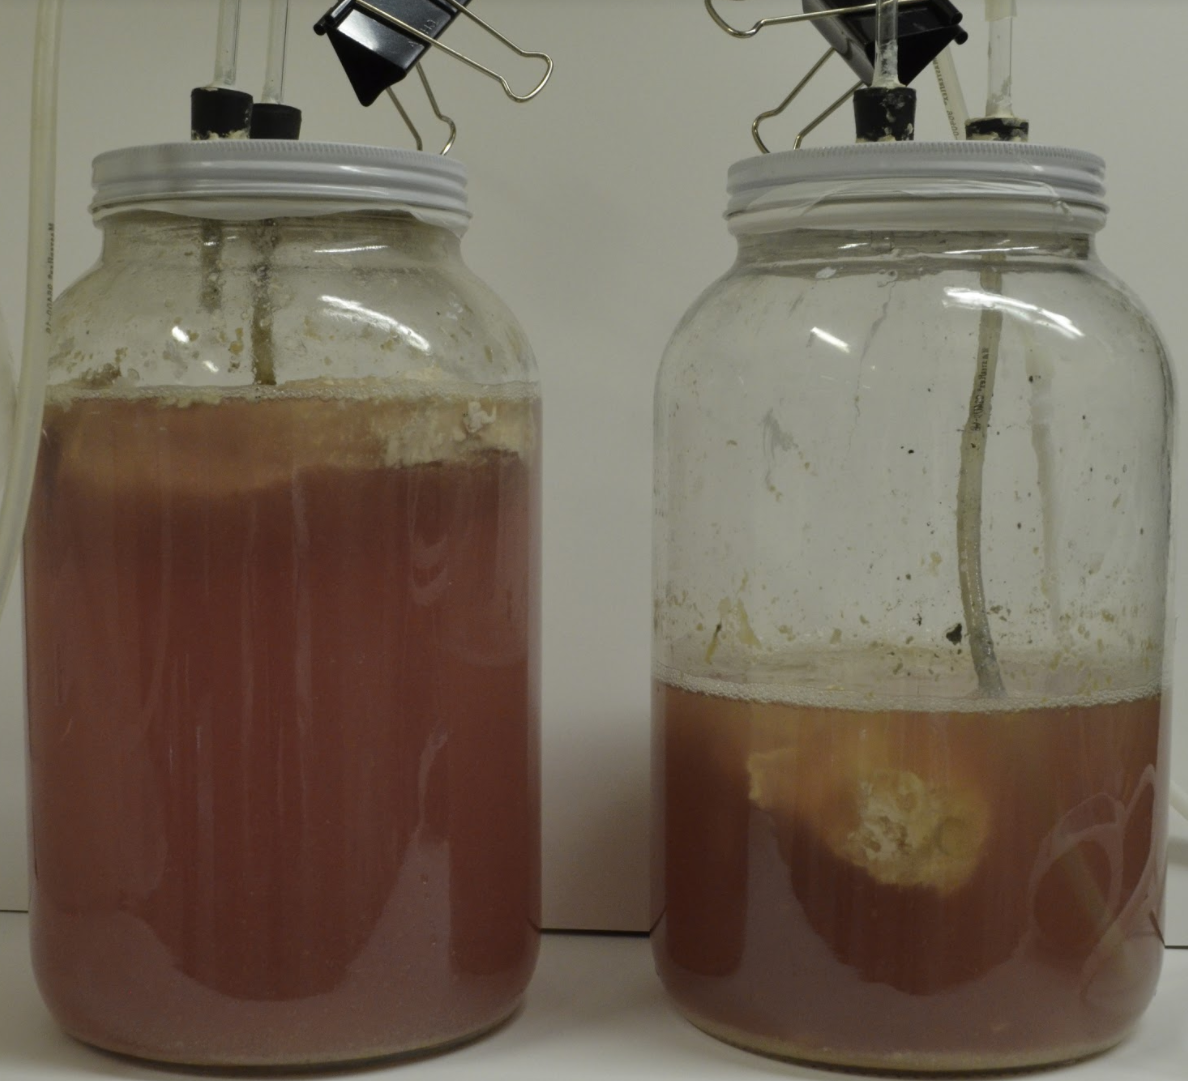 The DeathLab in New York is experimenting with methods of accelerated decomposition and fermentation to extract chemical elements from corpses that can be reused. Here, anaerobic fermentation is tested on a pork chop. (DeathLab)